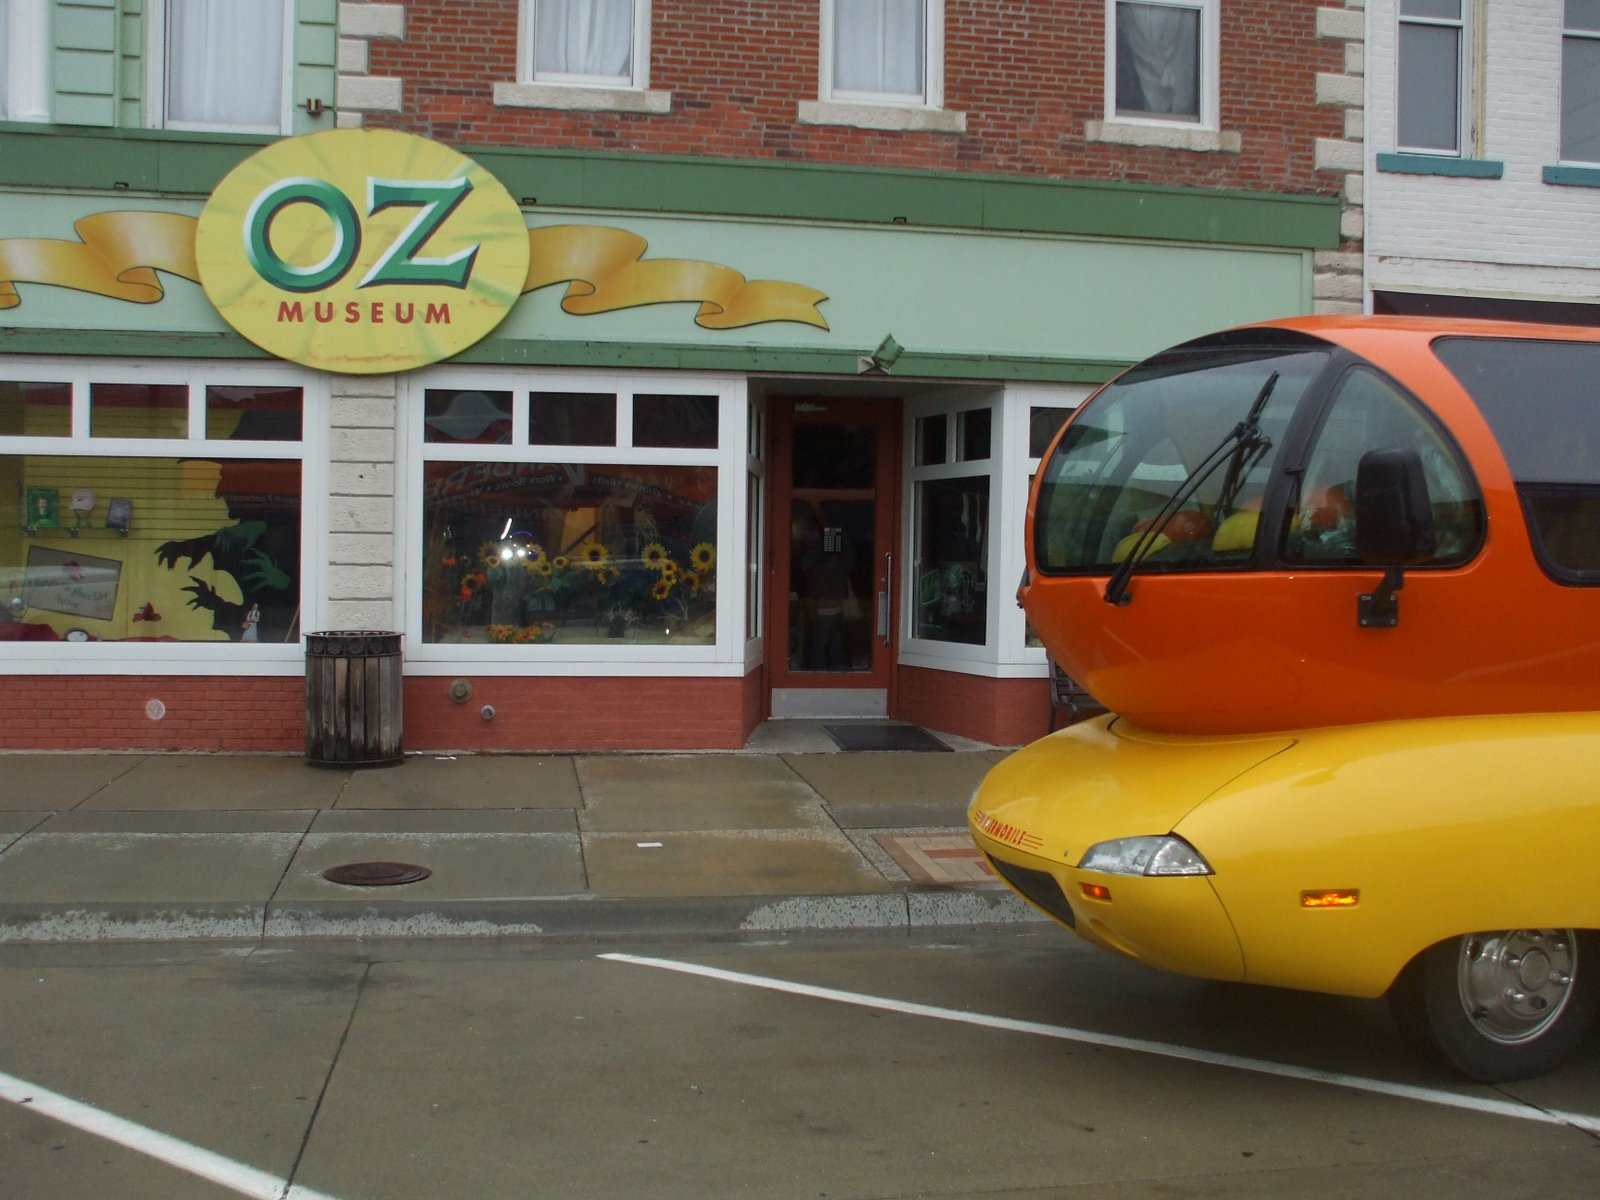 Live from the Wienermobile: Escape to Oz